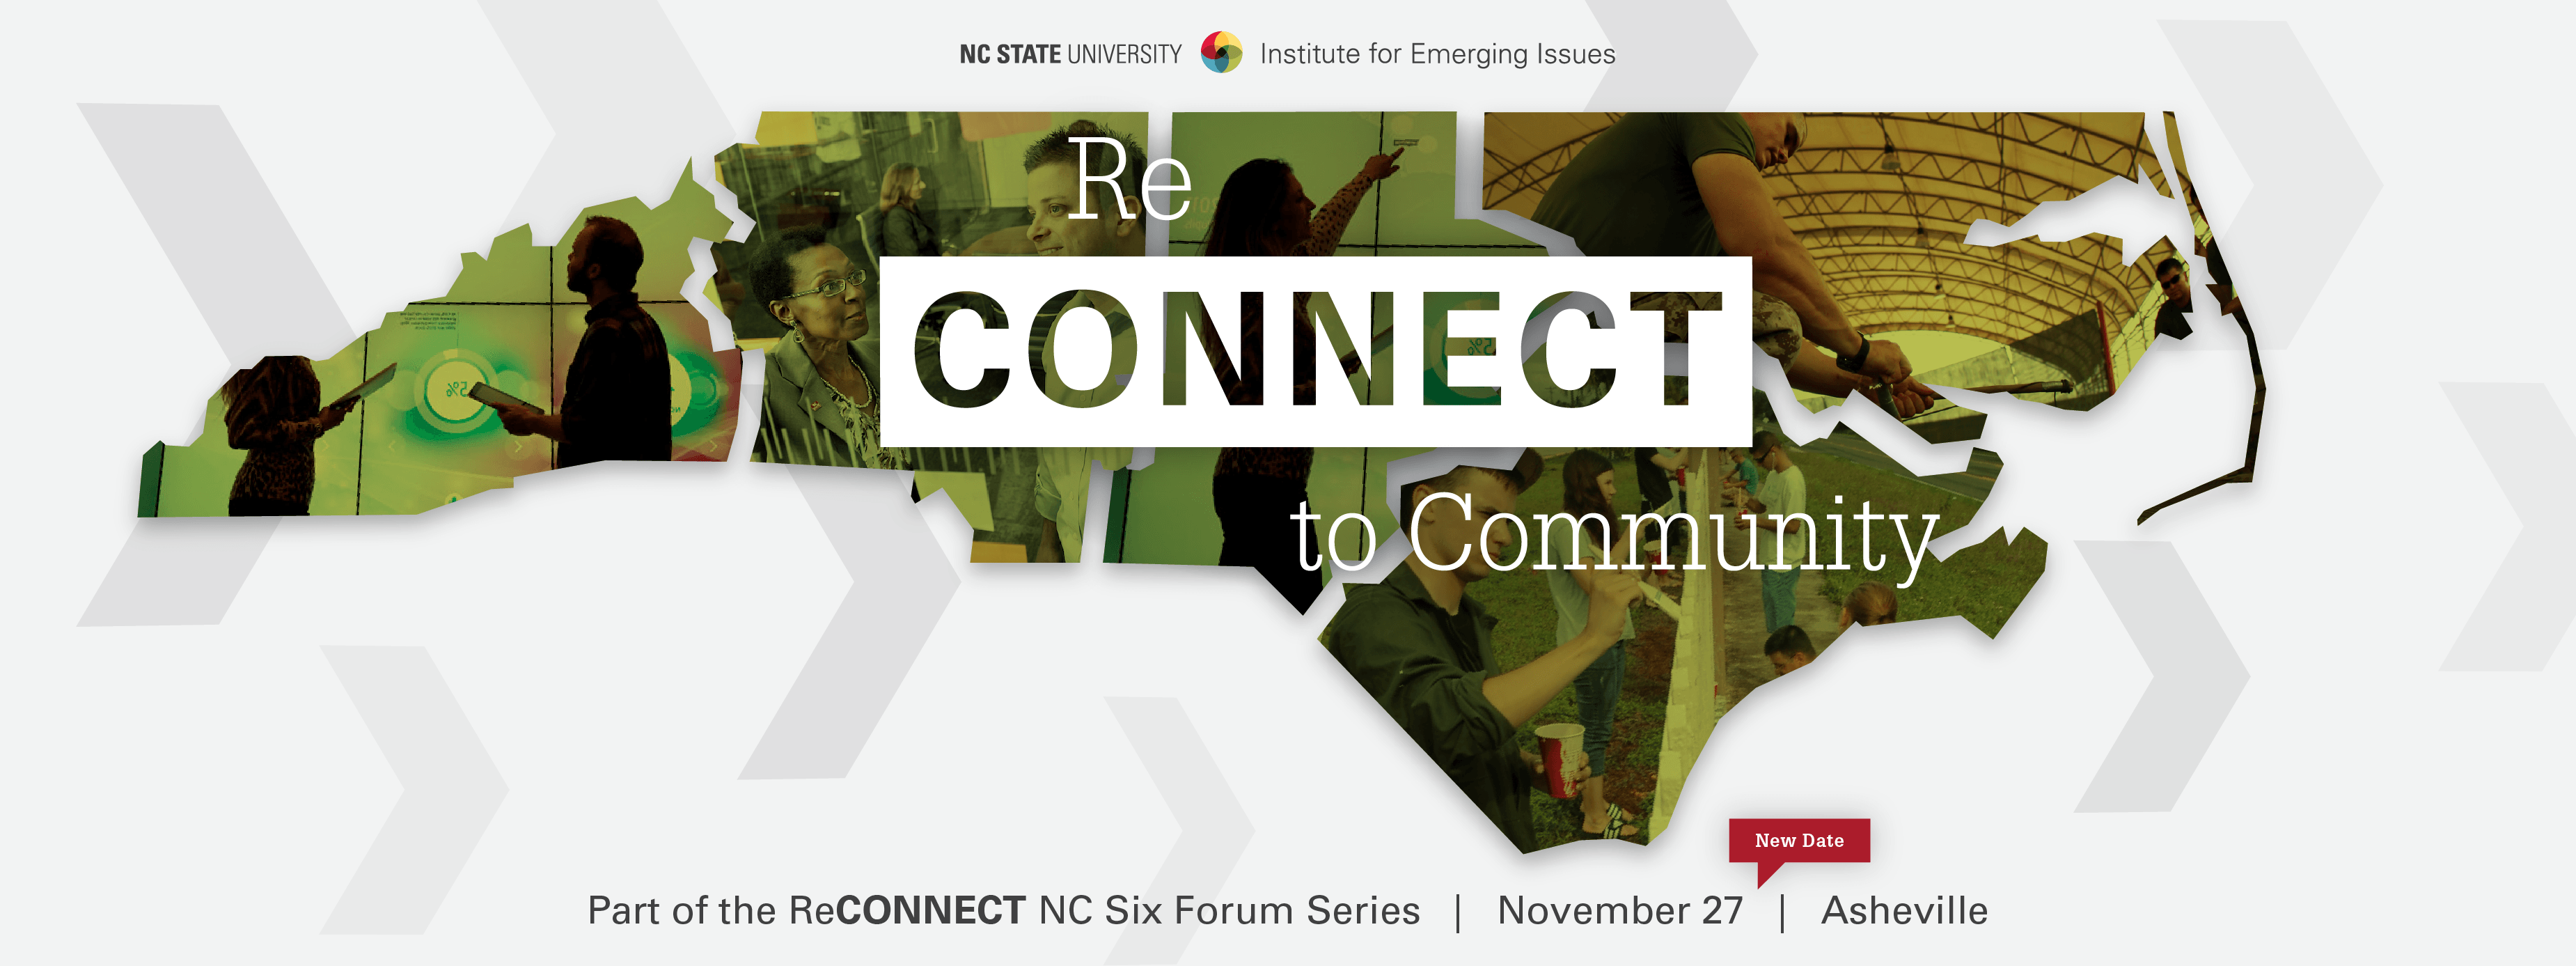 ReConnect To Community: Solving Problems Together for a More Prosperous Future